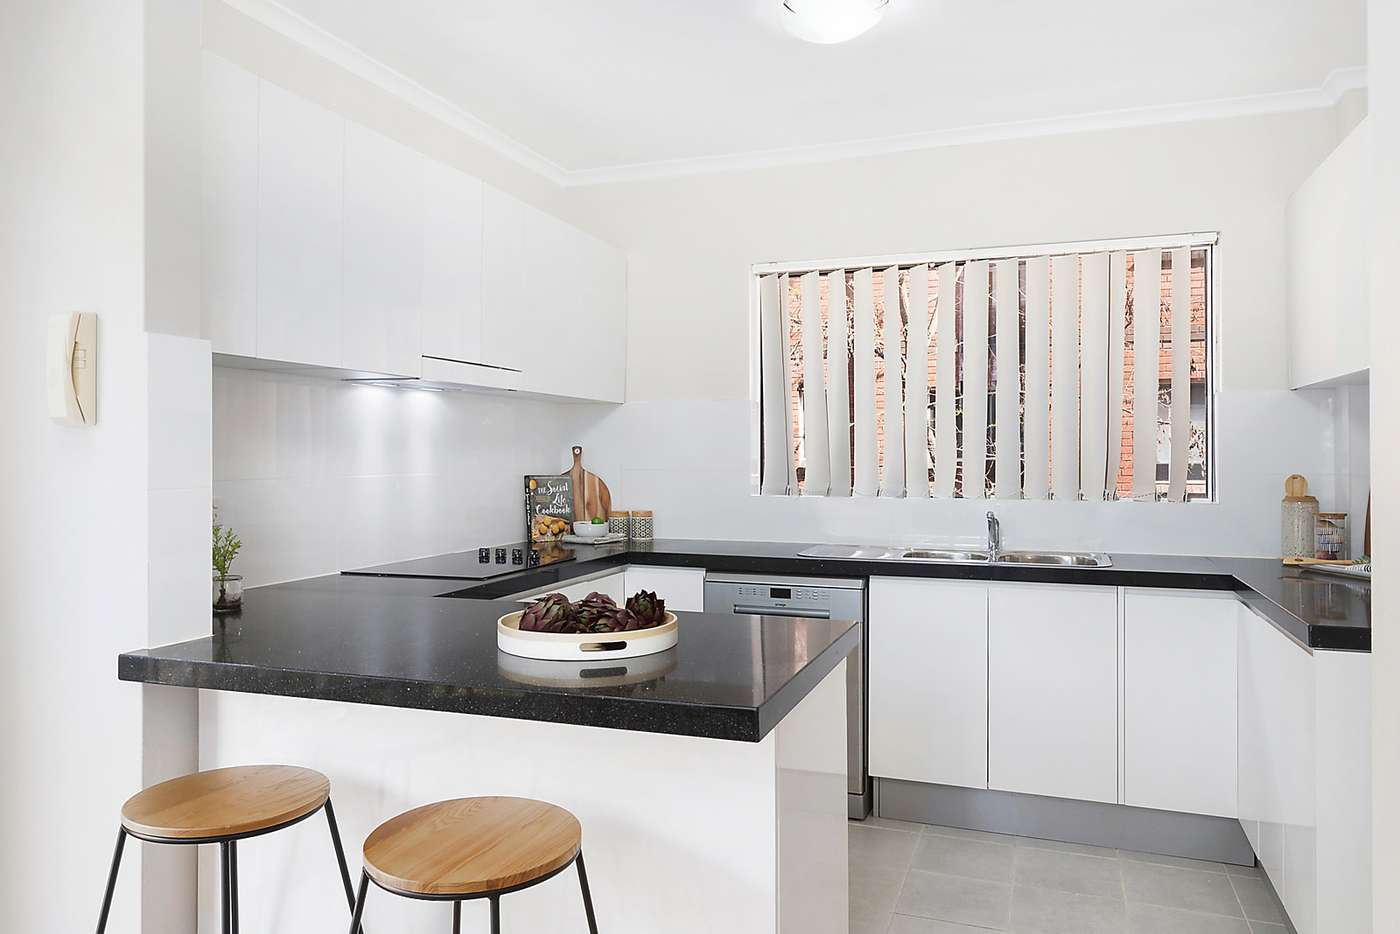 Main view of Homely apartment listing, 18/5-7 Water Street, Hornsby NSW 2077